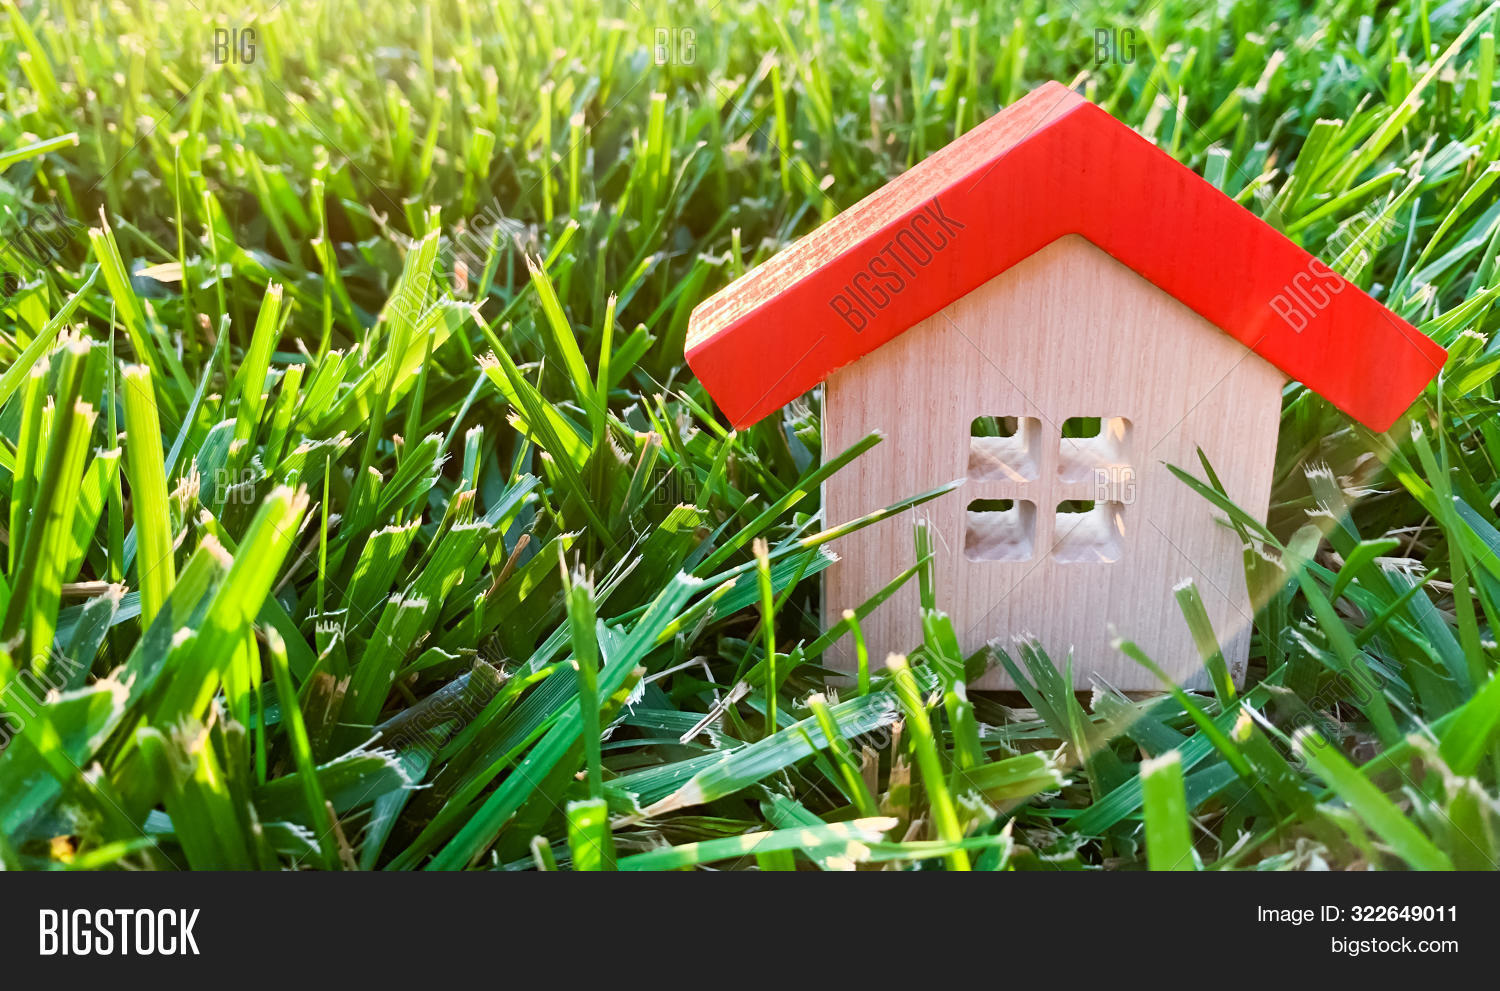 Miniature Wooden House Image & Photo (Free Trial) | Bigstock